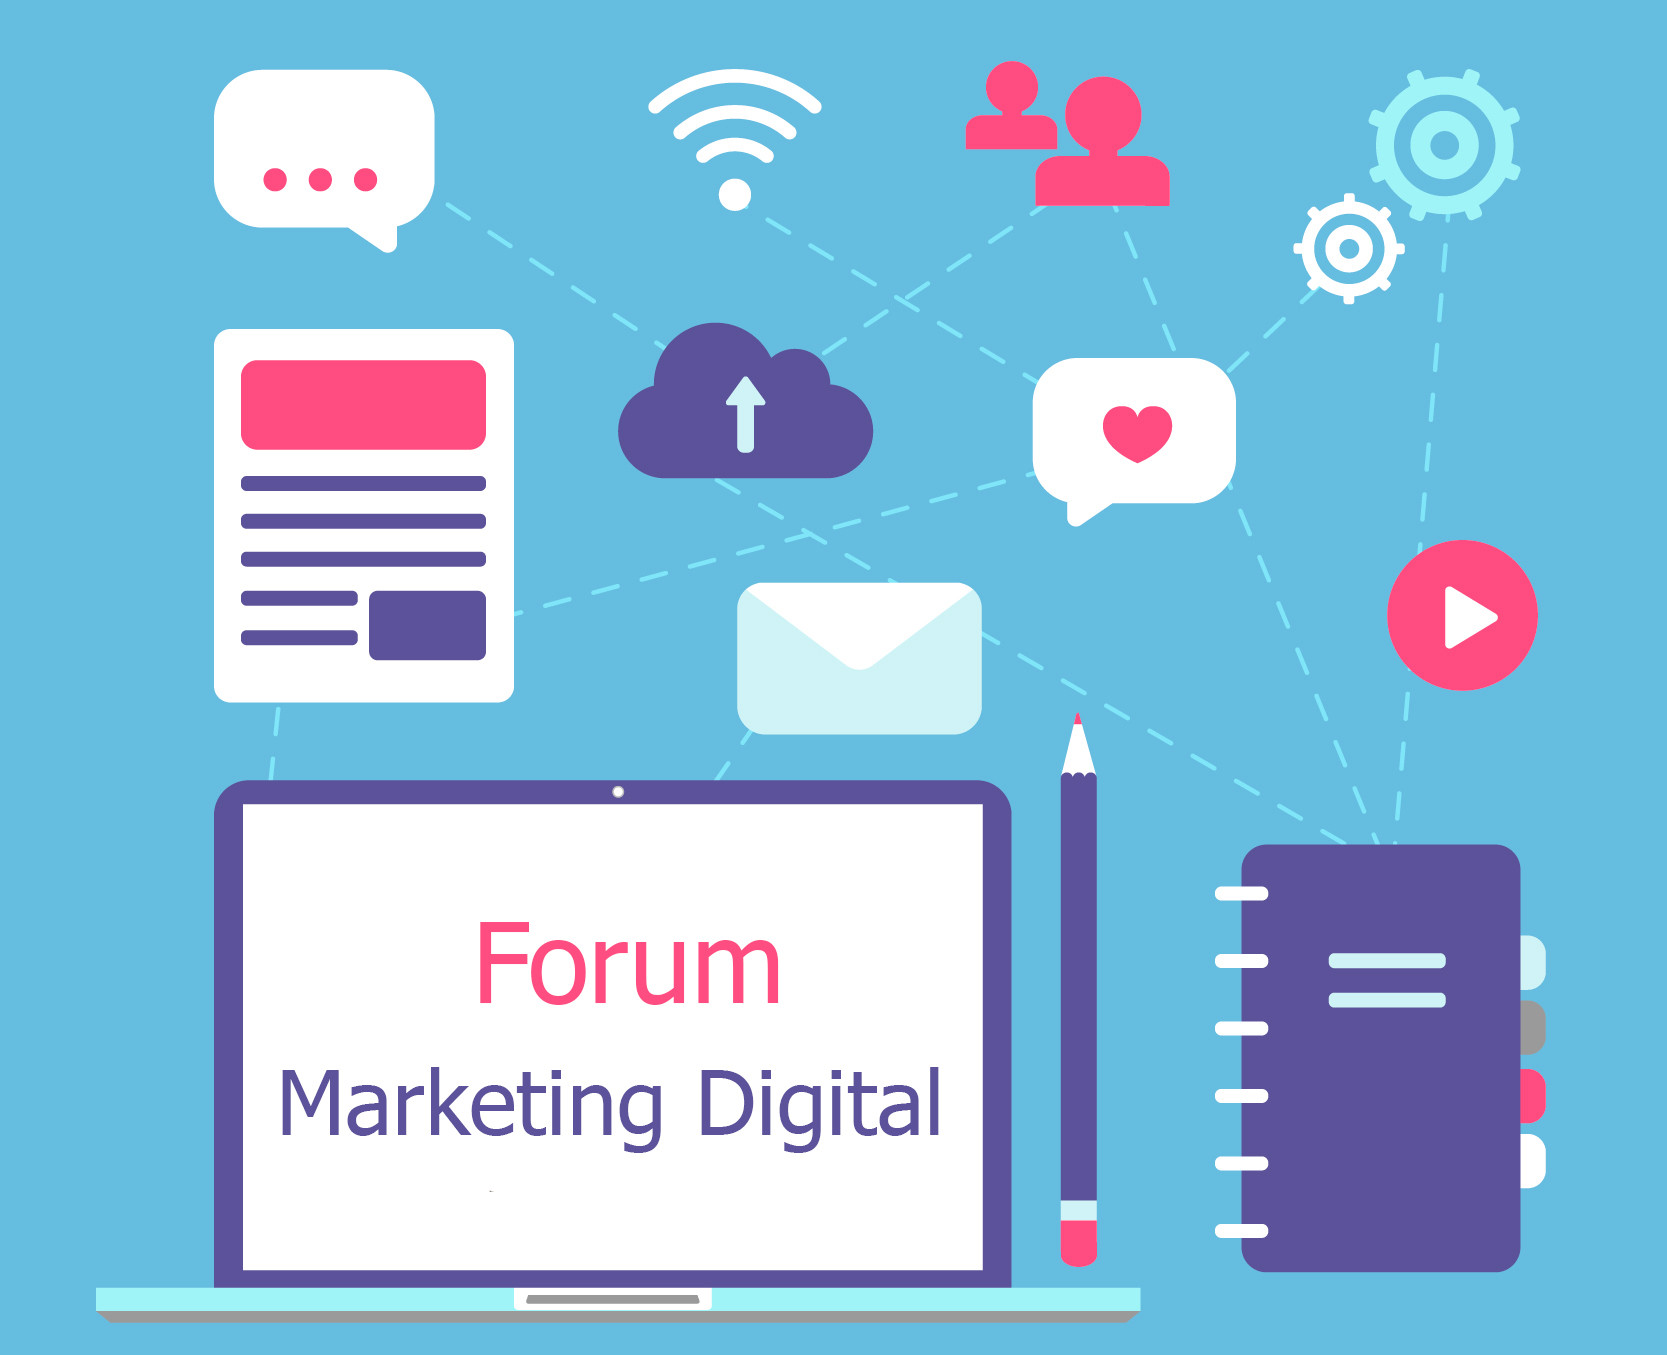 forum de marketing digital